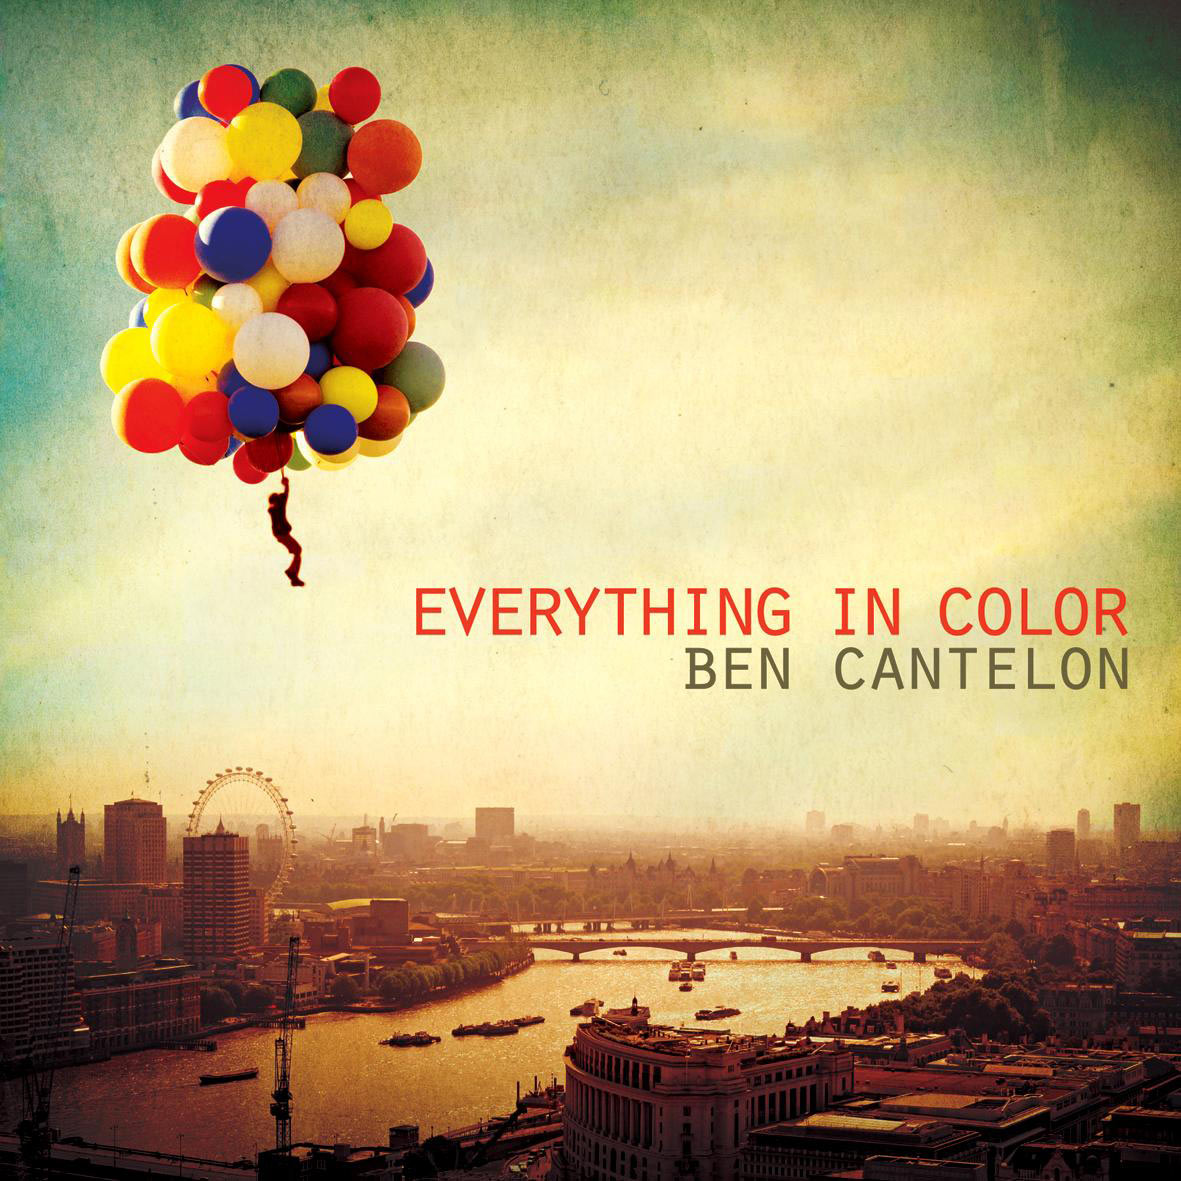 Ben Cantelon - Everything in Color 2012 English Christian Album